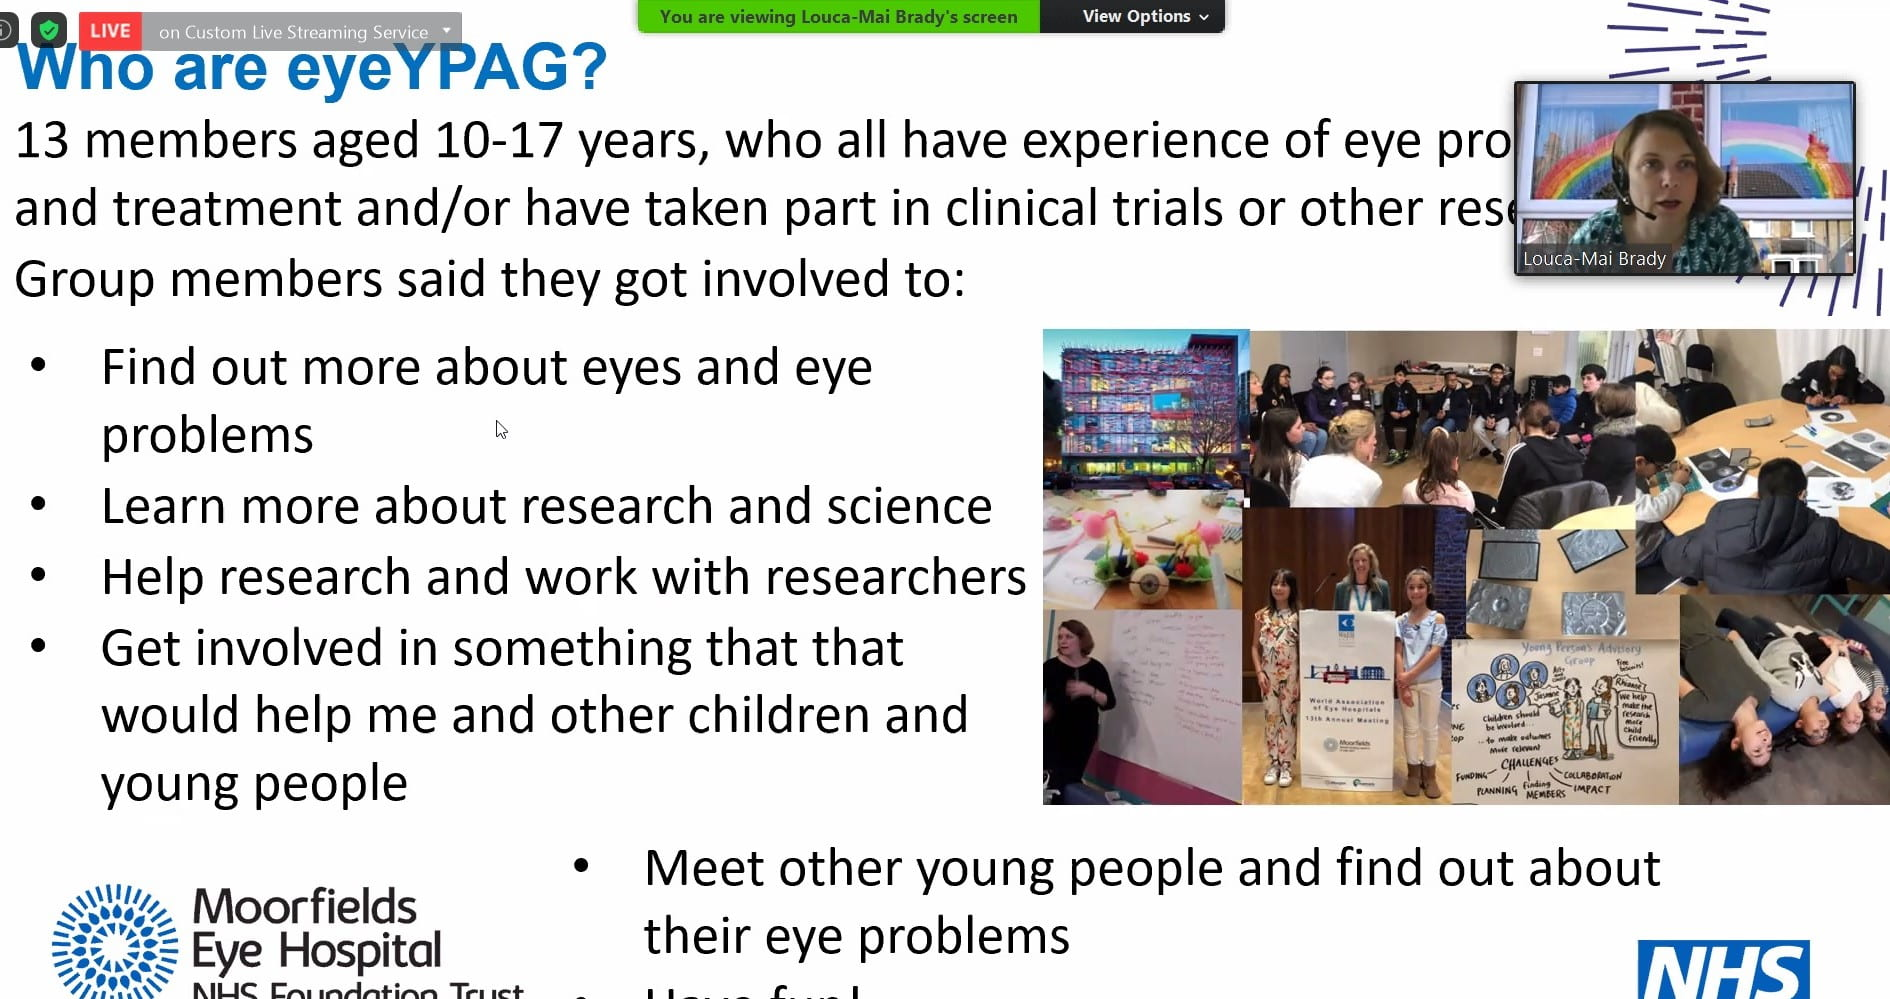 Image of a slide with reasons why eyeYPAG members get involved - to learn about science, help research, meet people